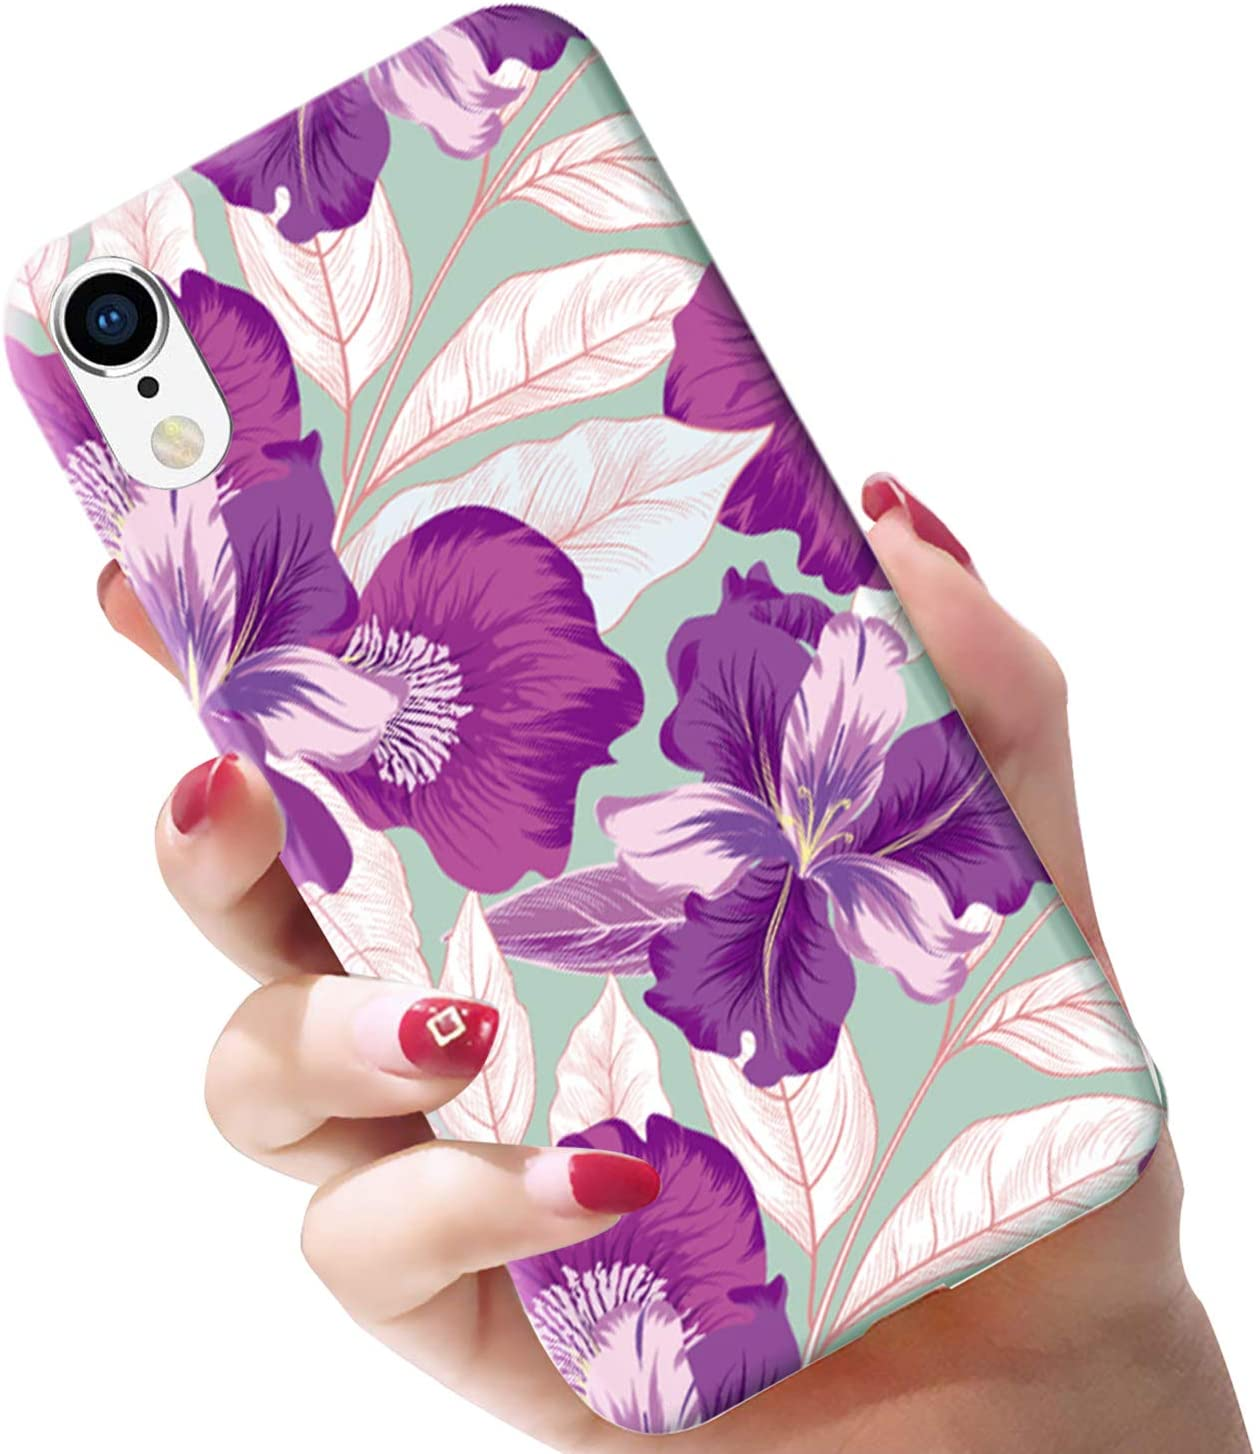 Attractive Flower and Leaves of Green Color on its Outer Side which Provides Pleasant Visual Effect for The User GYZCYQ Design Beautiful White Flowers Compatible iPhone X//XS Case for Girls Women